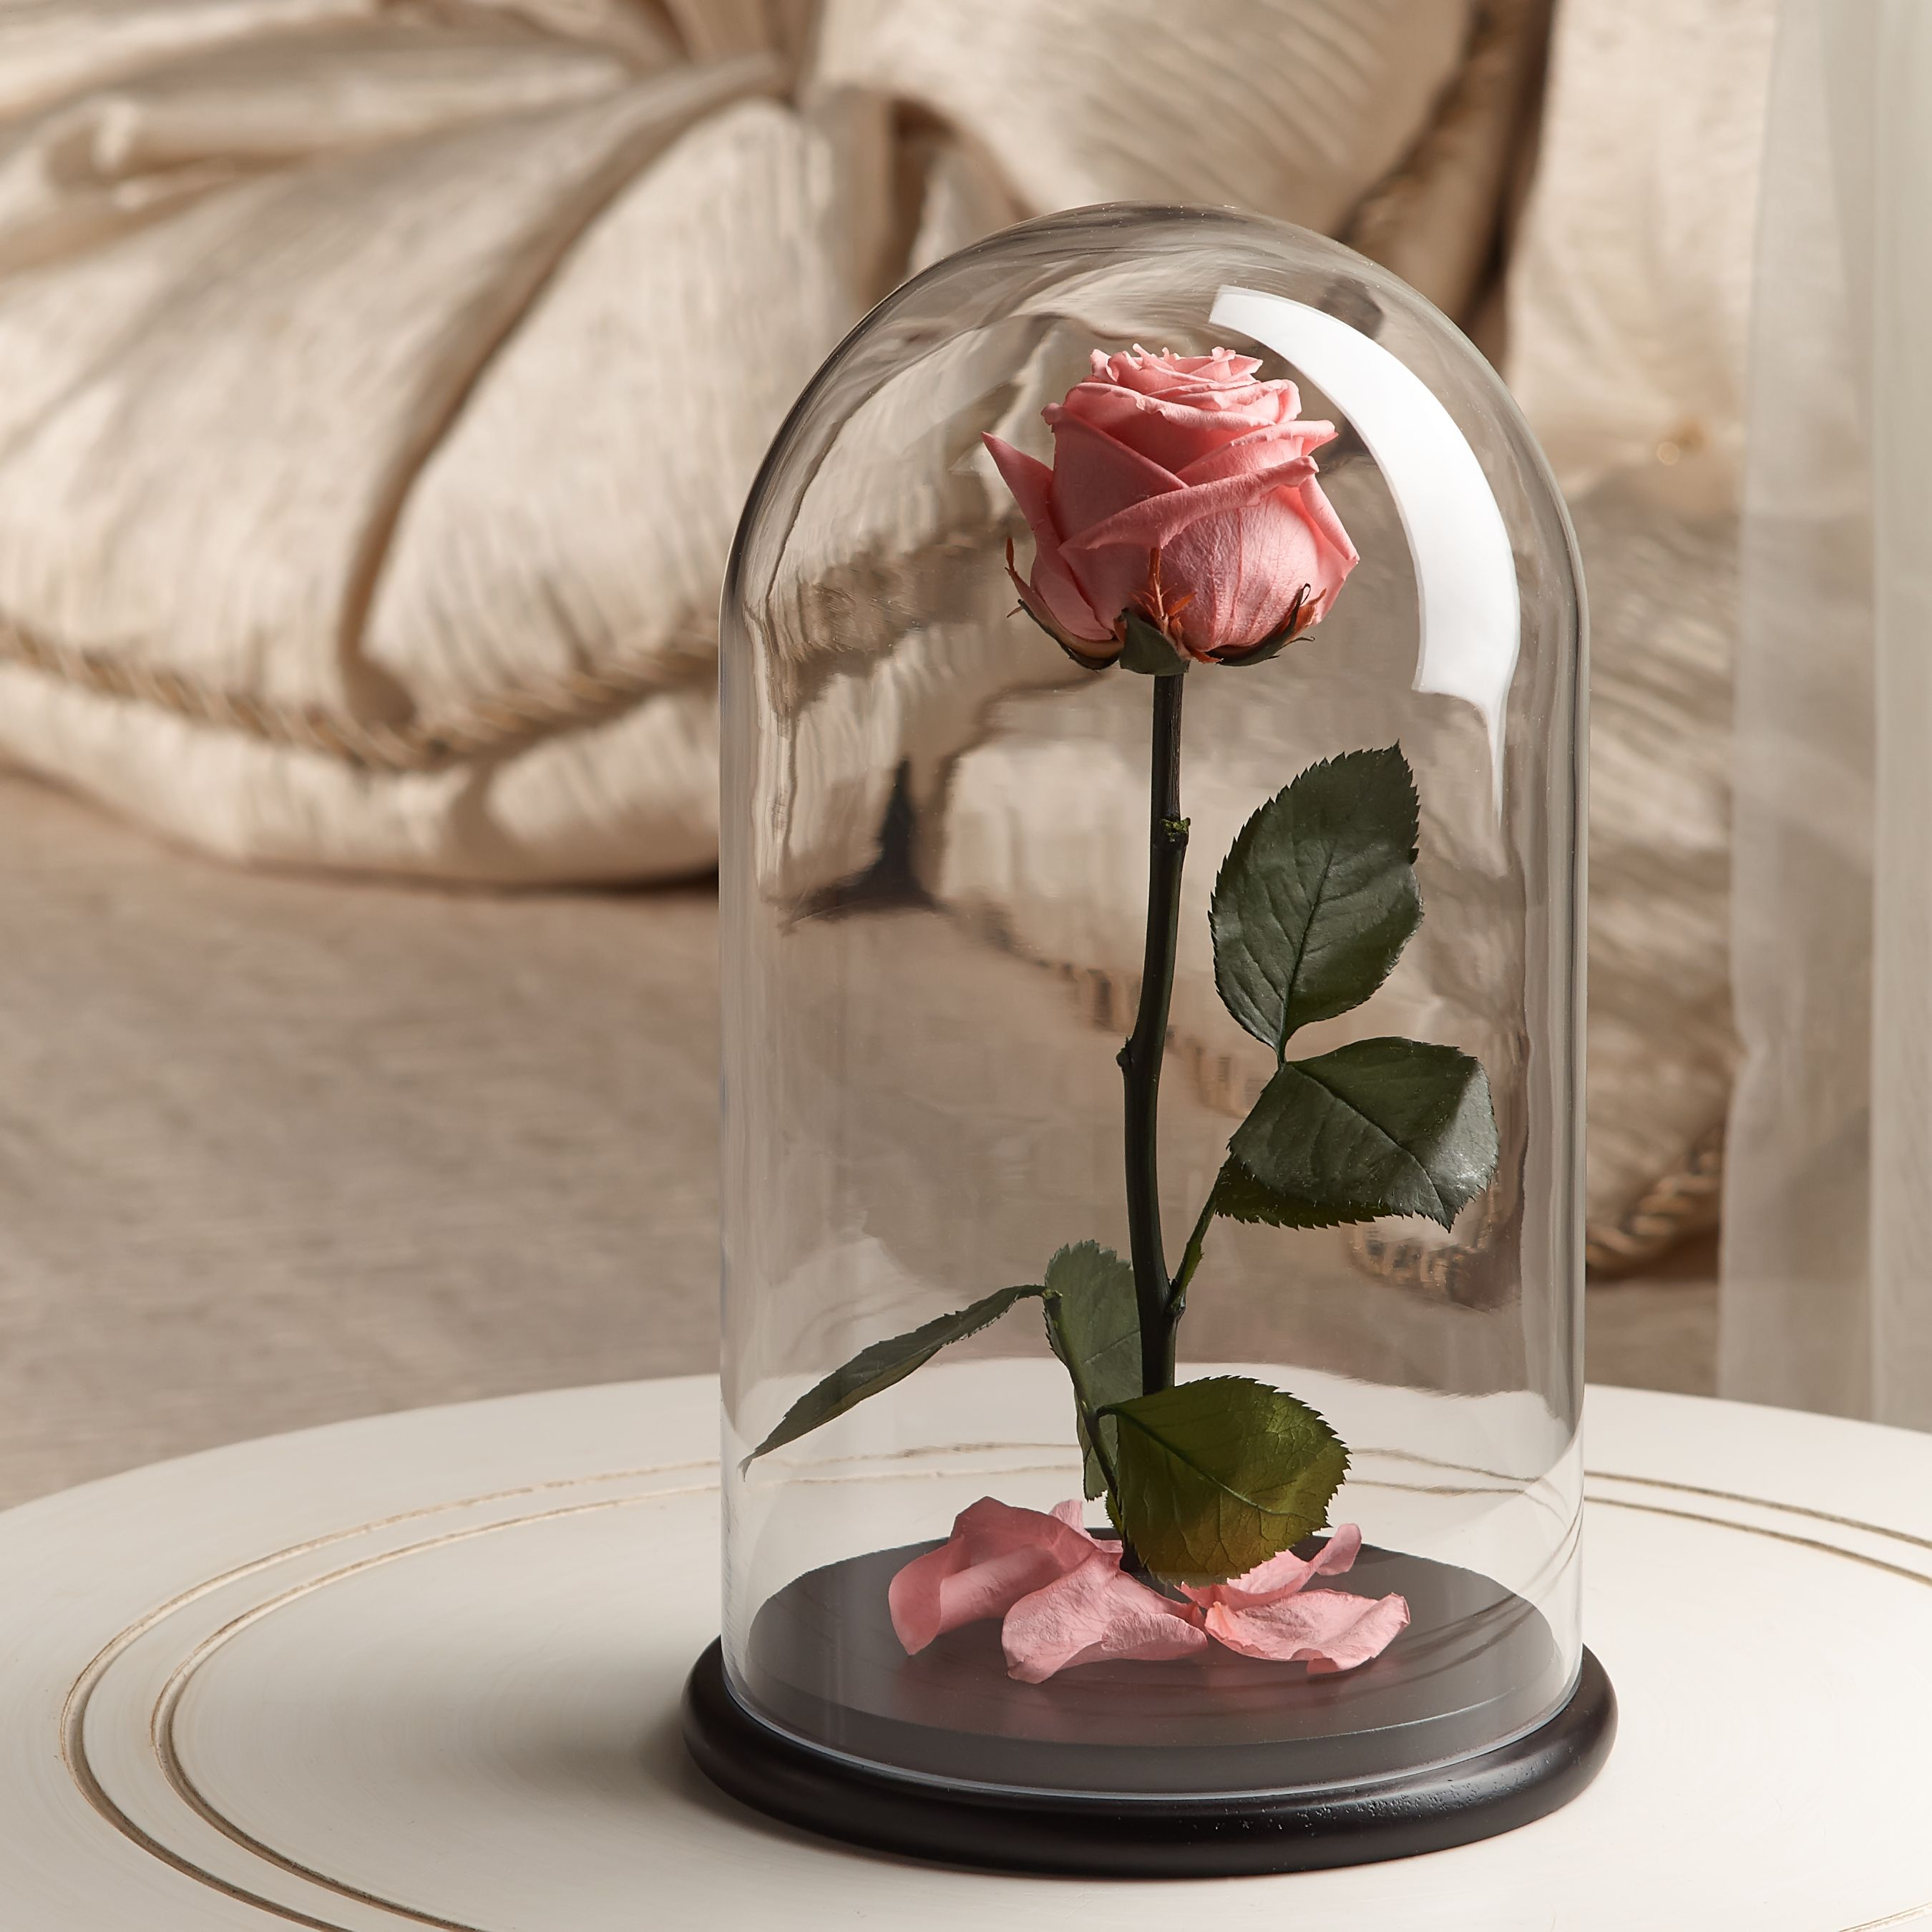 Beauty And The Beast Rose Baby Pink Gift Box Rose In Glass Dome Enchanted Rose Forever Rose Preserved Rose Bell Rose Dome Pink Gift Box Enchanted Rose,Joanna Gaines Shiplap Bedroom